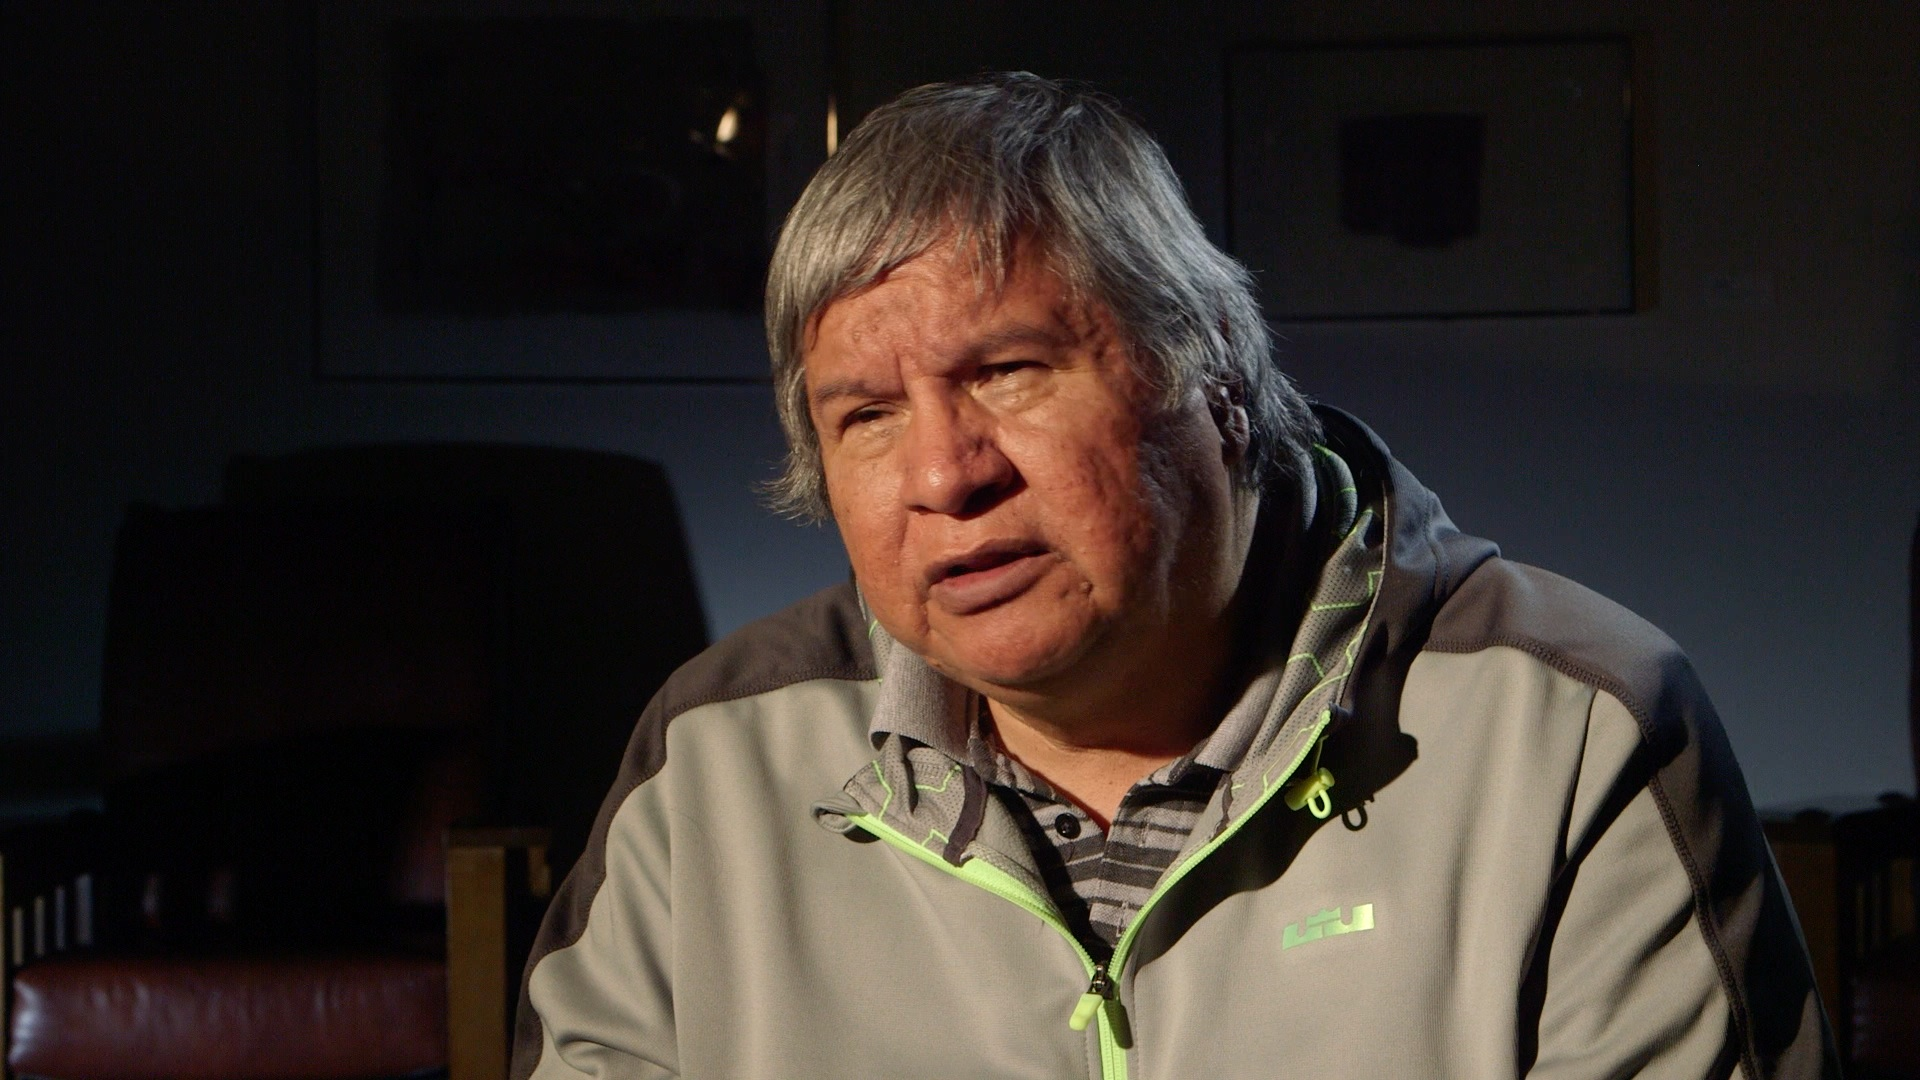 Opinion: Tribute to the late Blackfoot scholar Narcisse Blood